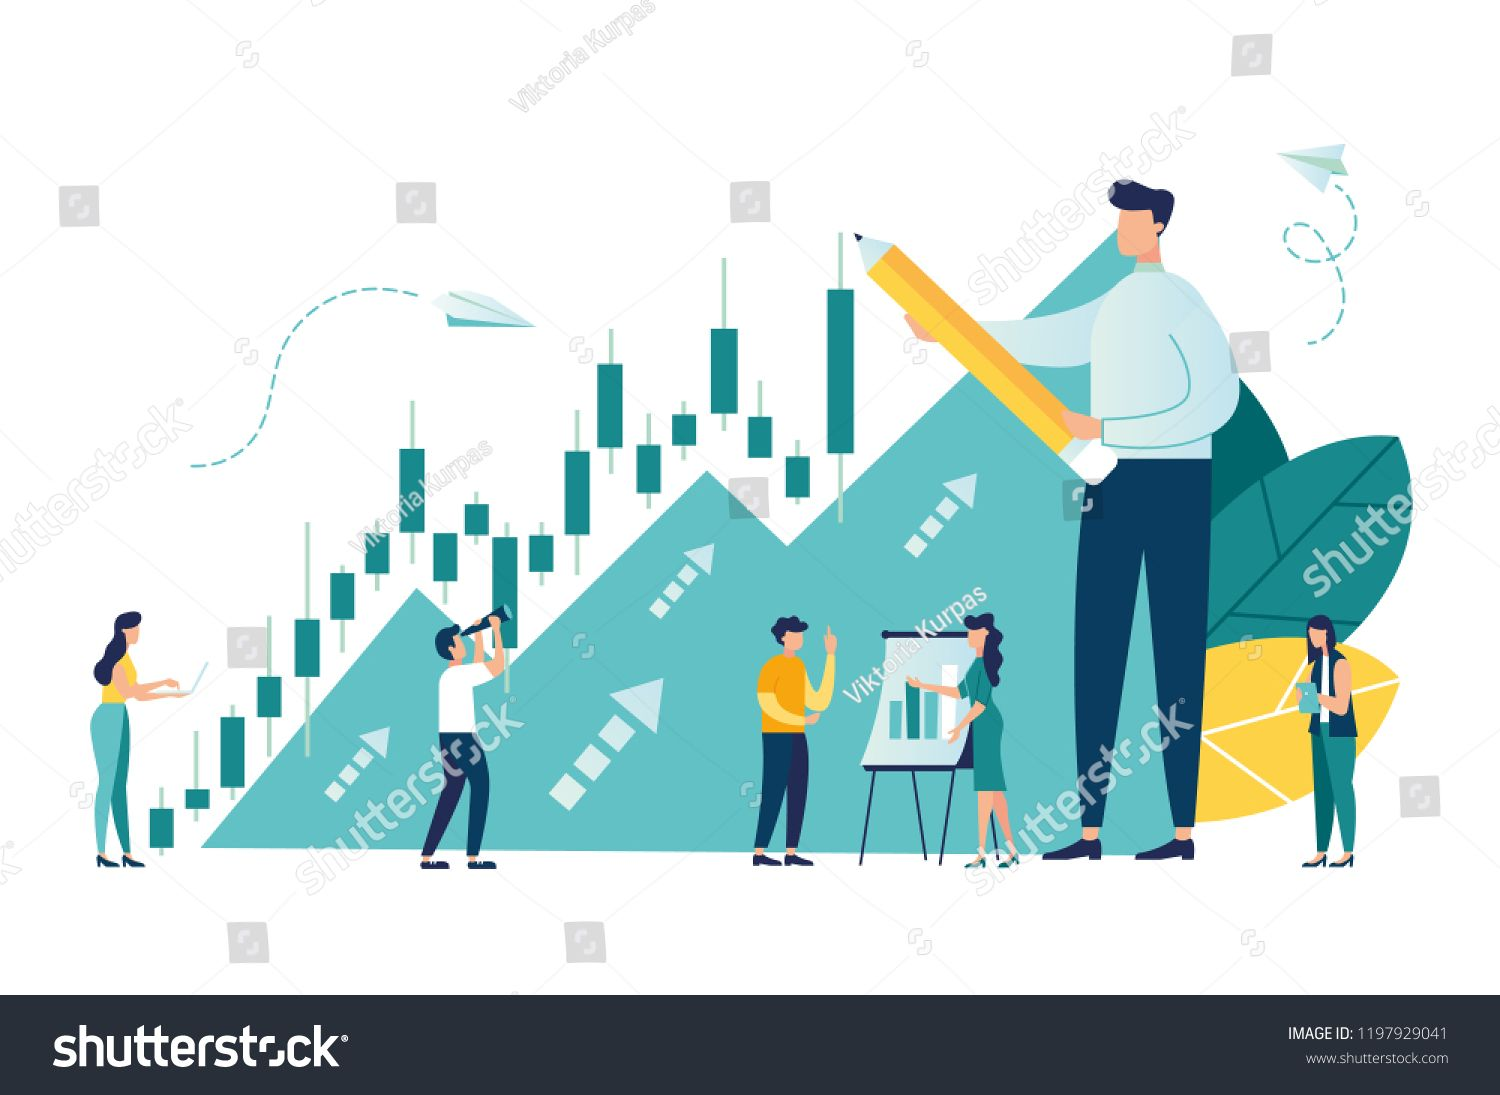 Vector Illustration Candlestick Chart Of The Stock Market Move Up Motivation The Way To Achieve The Goal Vector Illustration Candlestick Chart Illustration